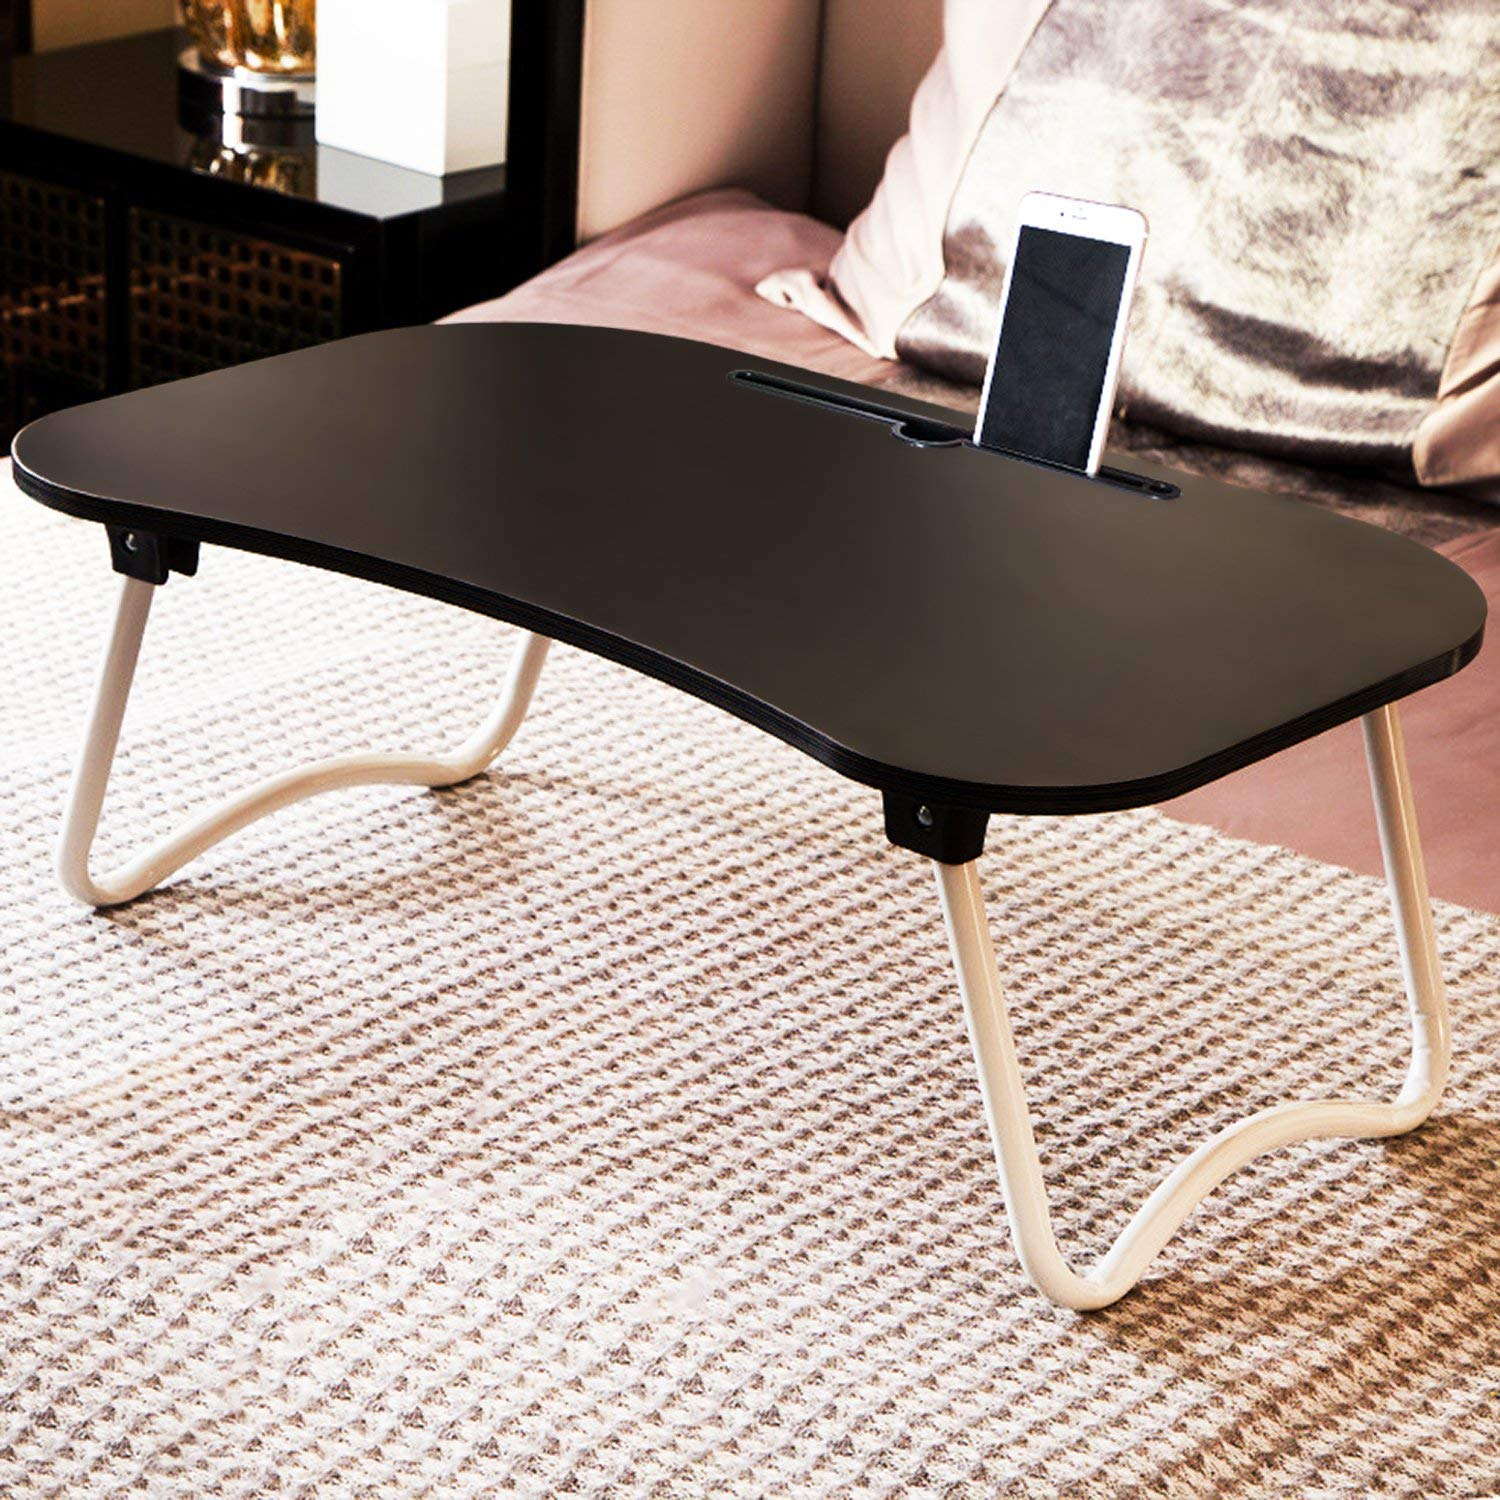 Jerry & Maggie Laptop Desk Wood Round Edge Lapdesk Game Table with Non-slip design & I pad Slot - Foldable Portable on Bed Sofa Party Computer Play Table Lazy Personal Desk (Jet Black)